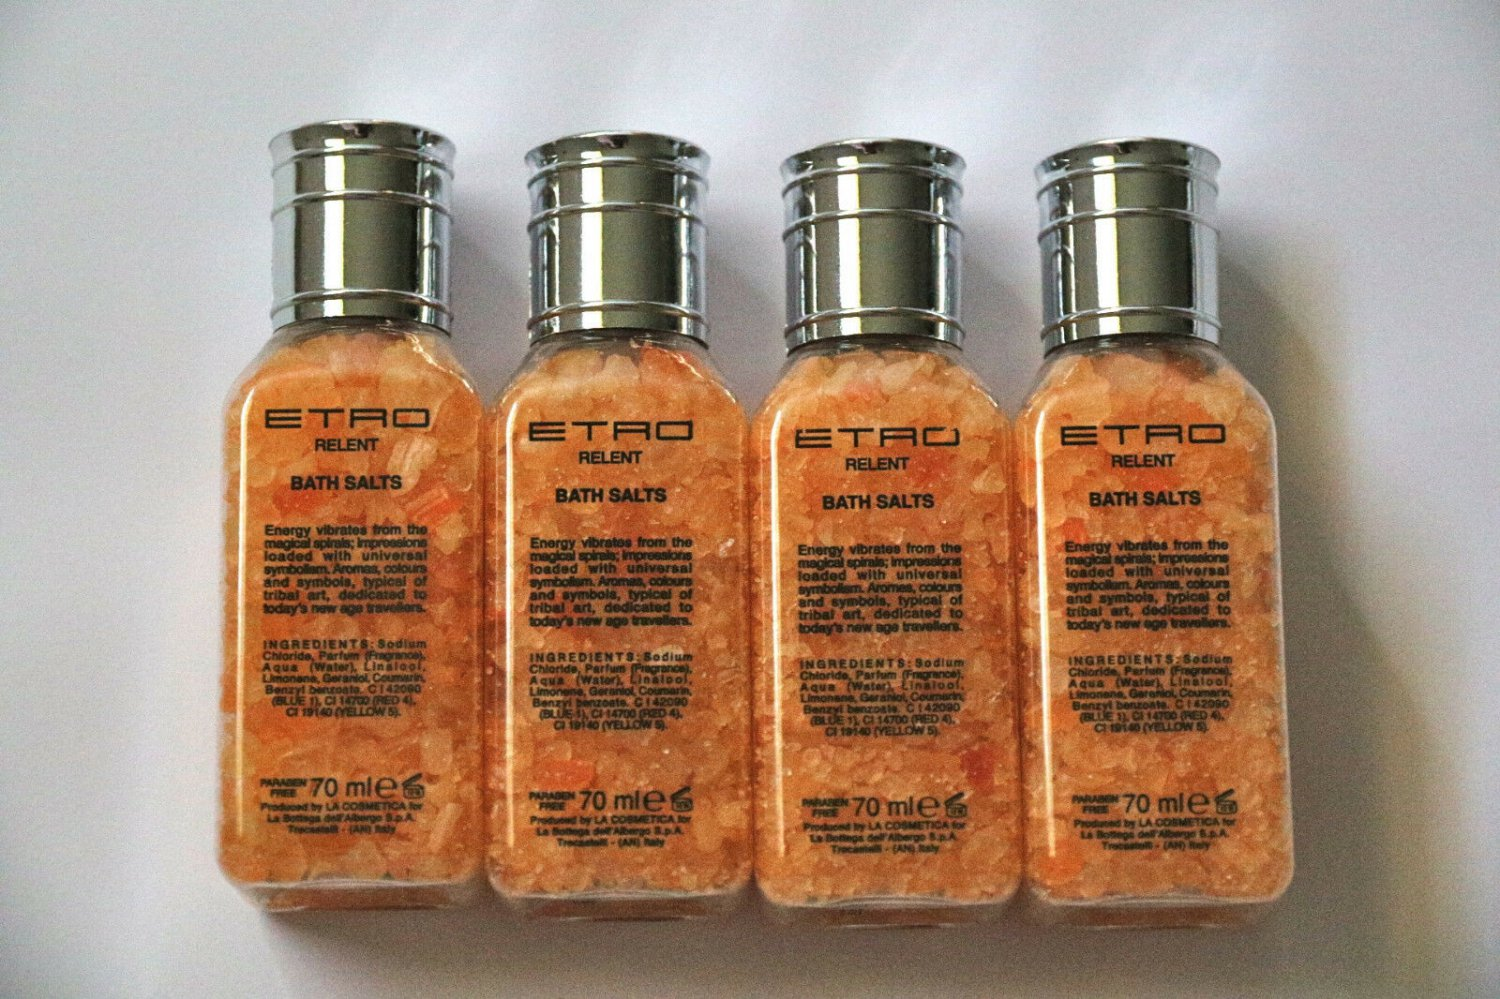 Lot of 4 x 70 ml ETRO Relent Bath Salts Lufthansa First Class Made in Italy Set